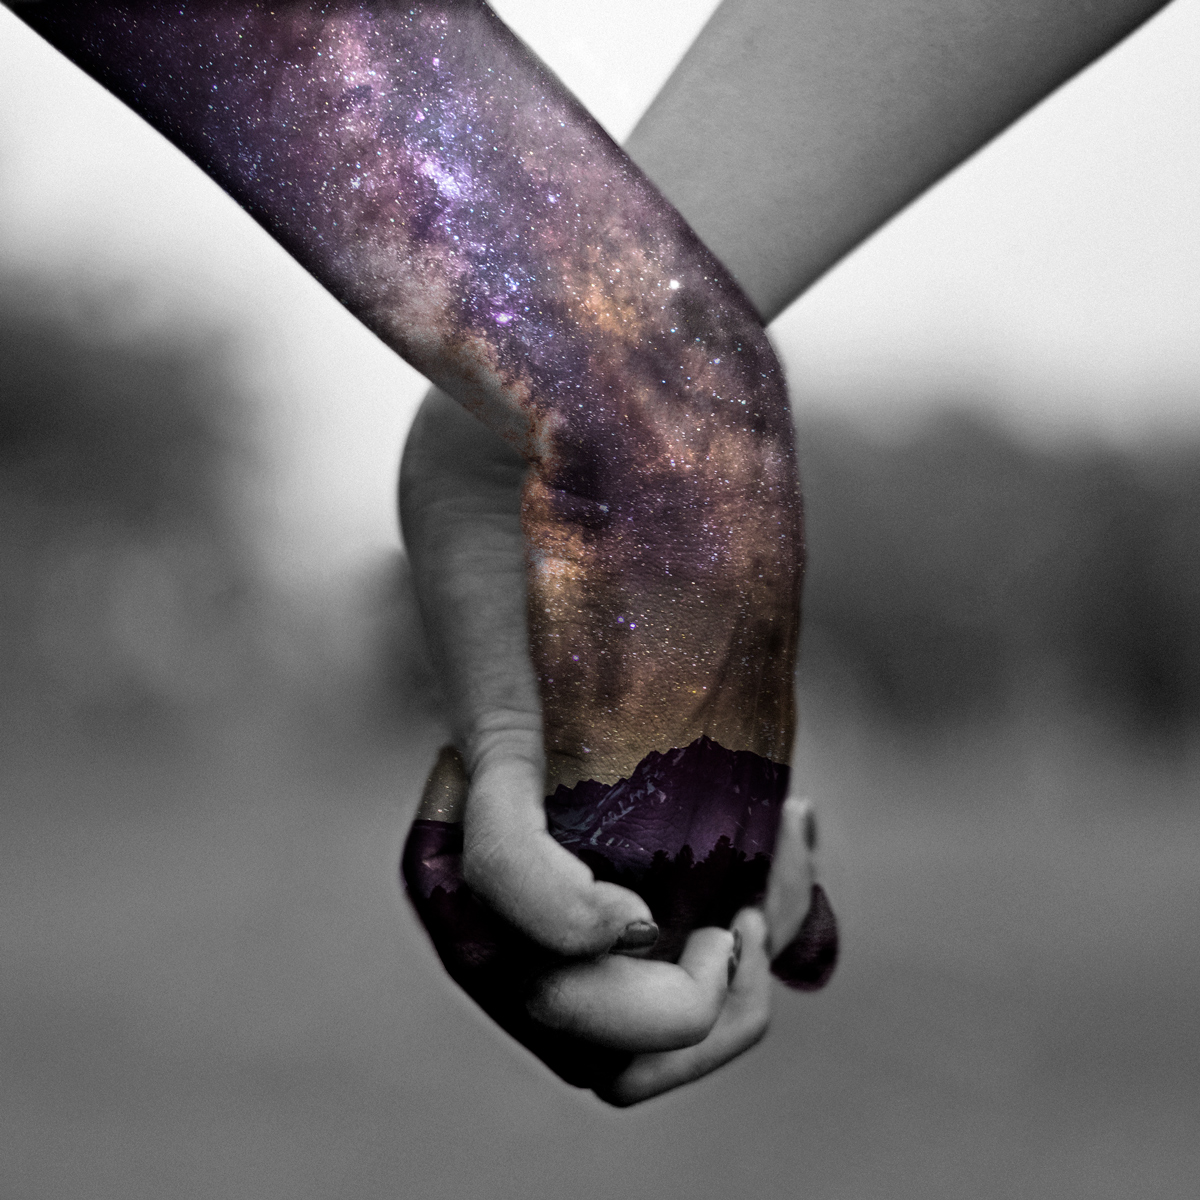 holding hands close-up, milky way galaxy overlaid on one hand